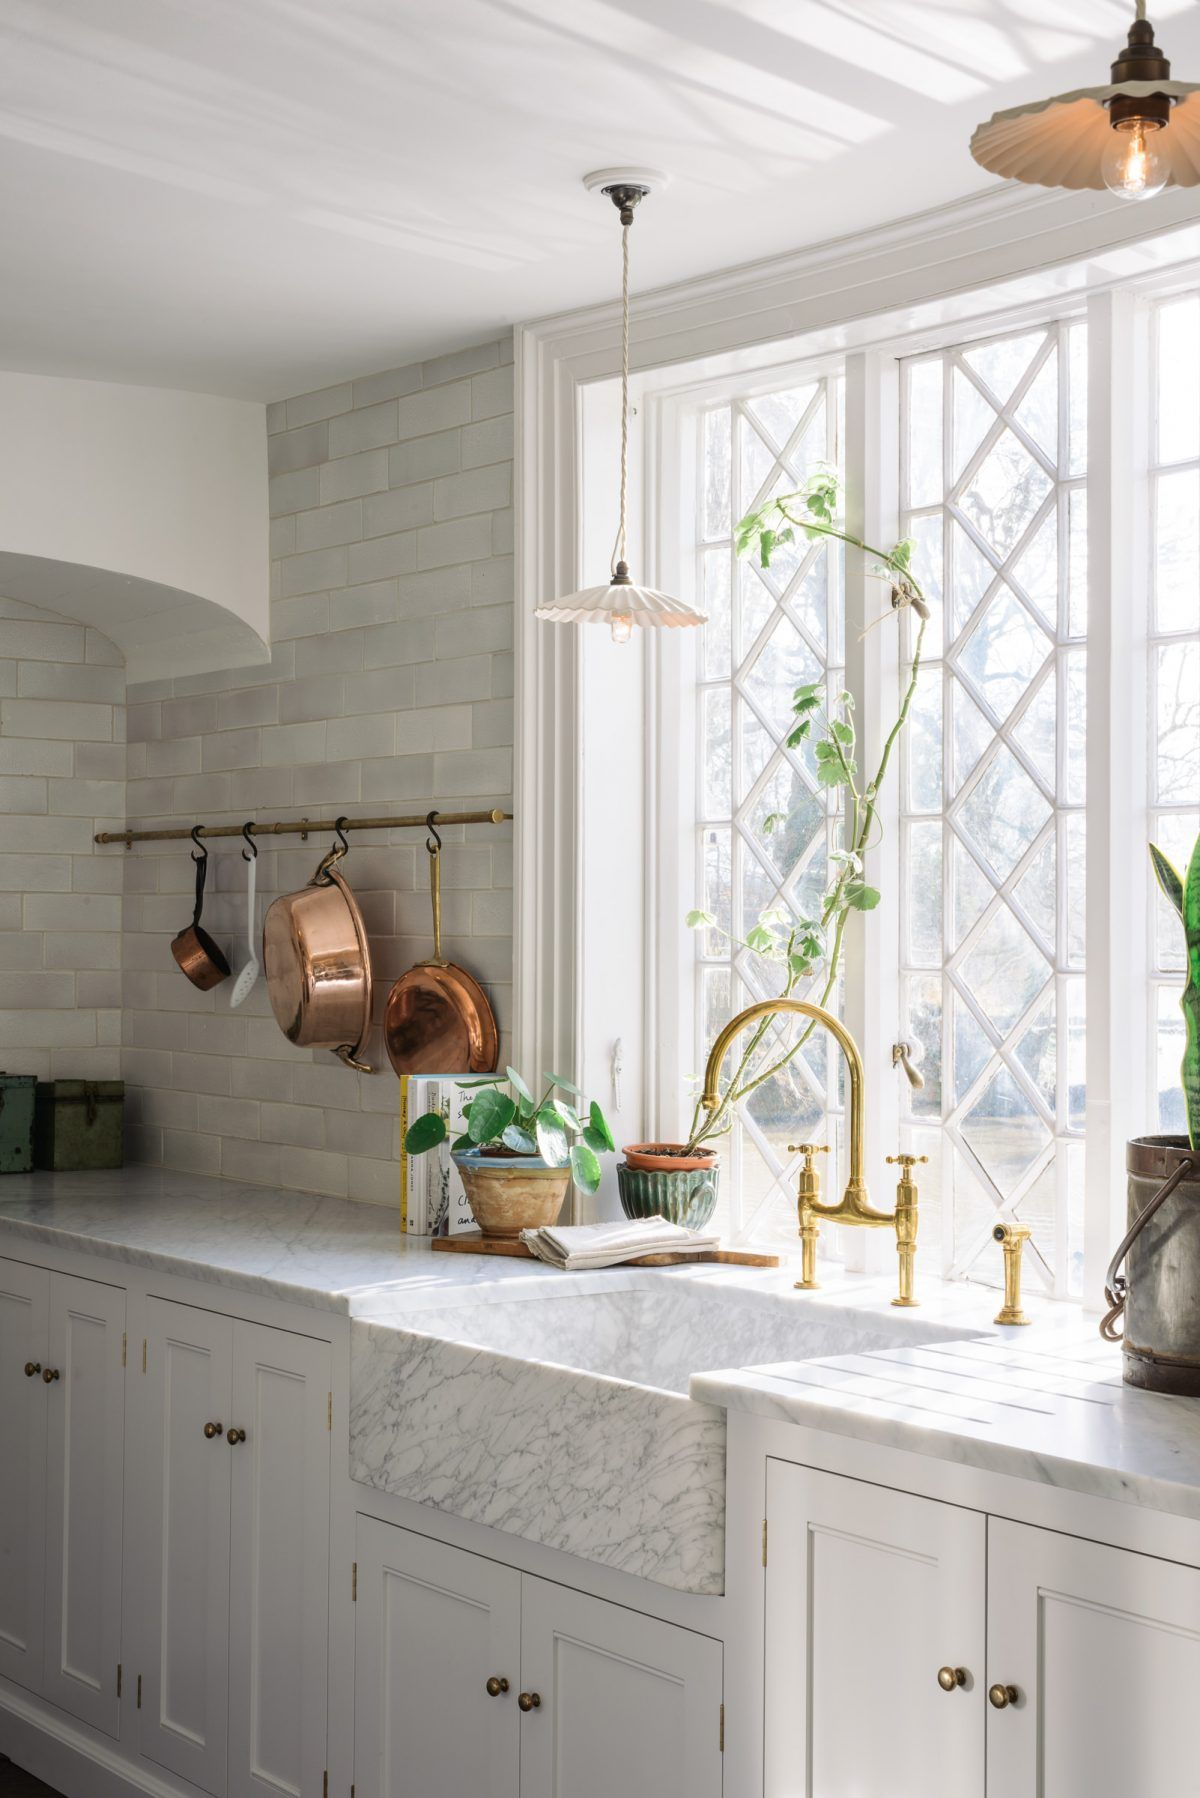 Marble kitchen sink via DeVol Kitchens with Copper Pots and Pans